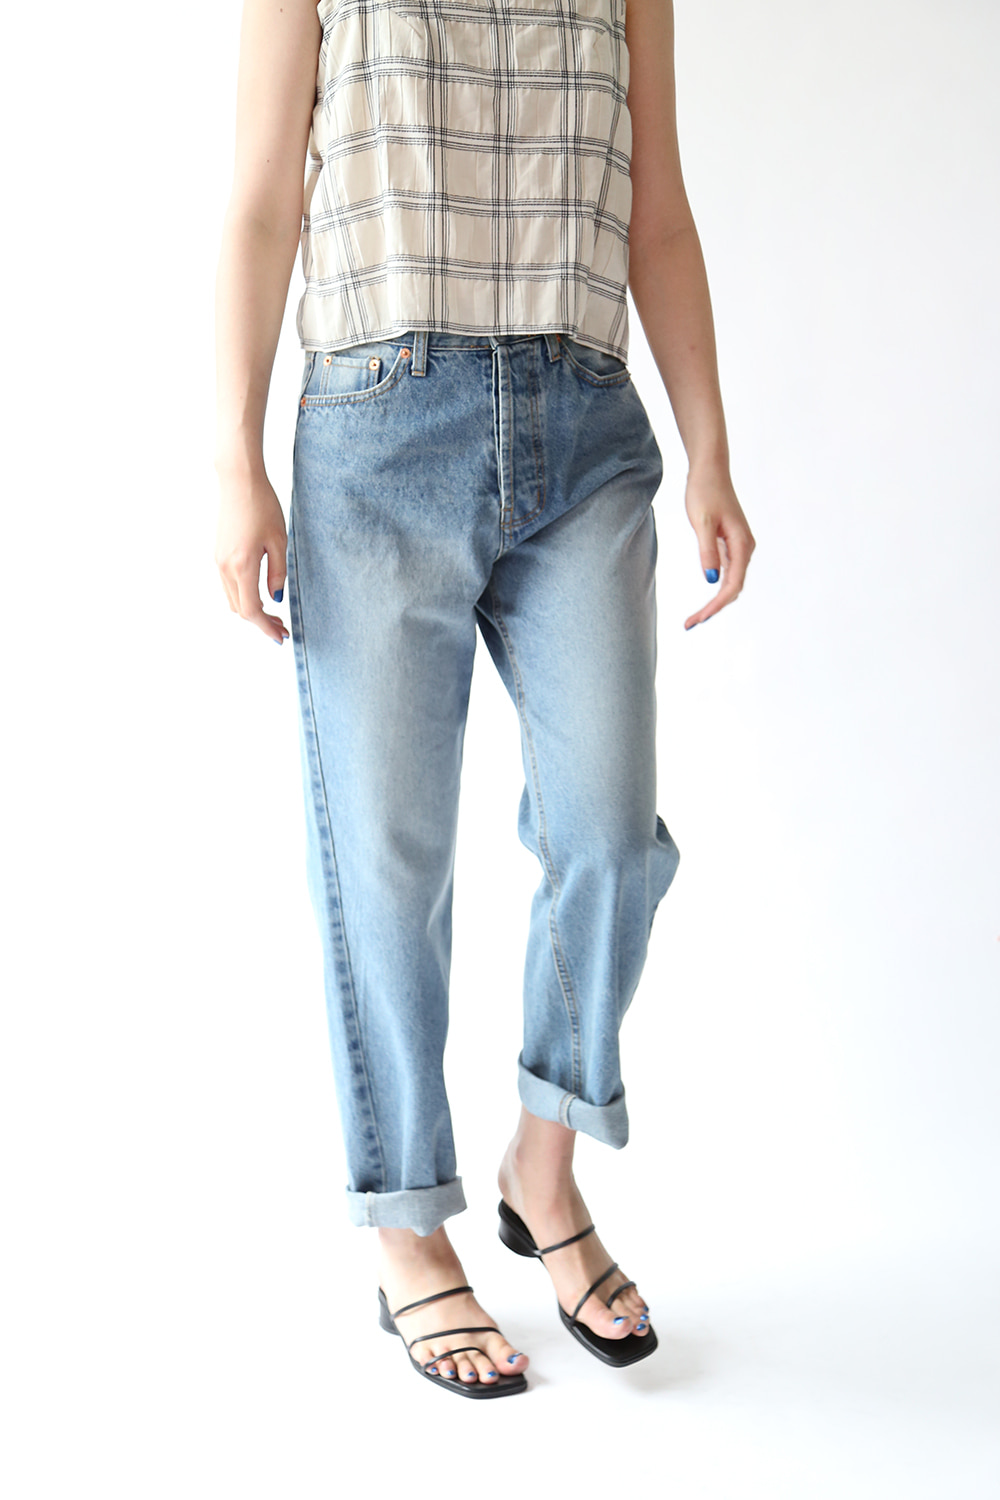 VINTAGE STYLE STRAIGHT JEANS